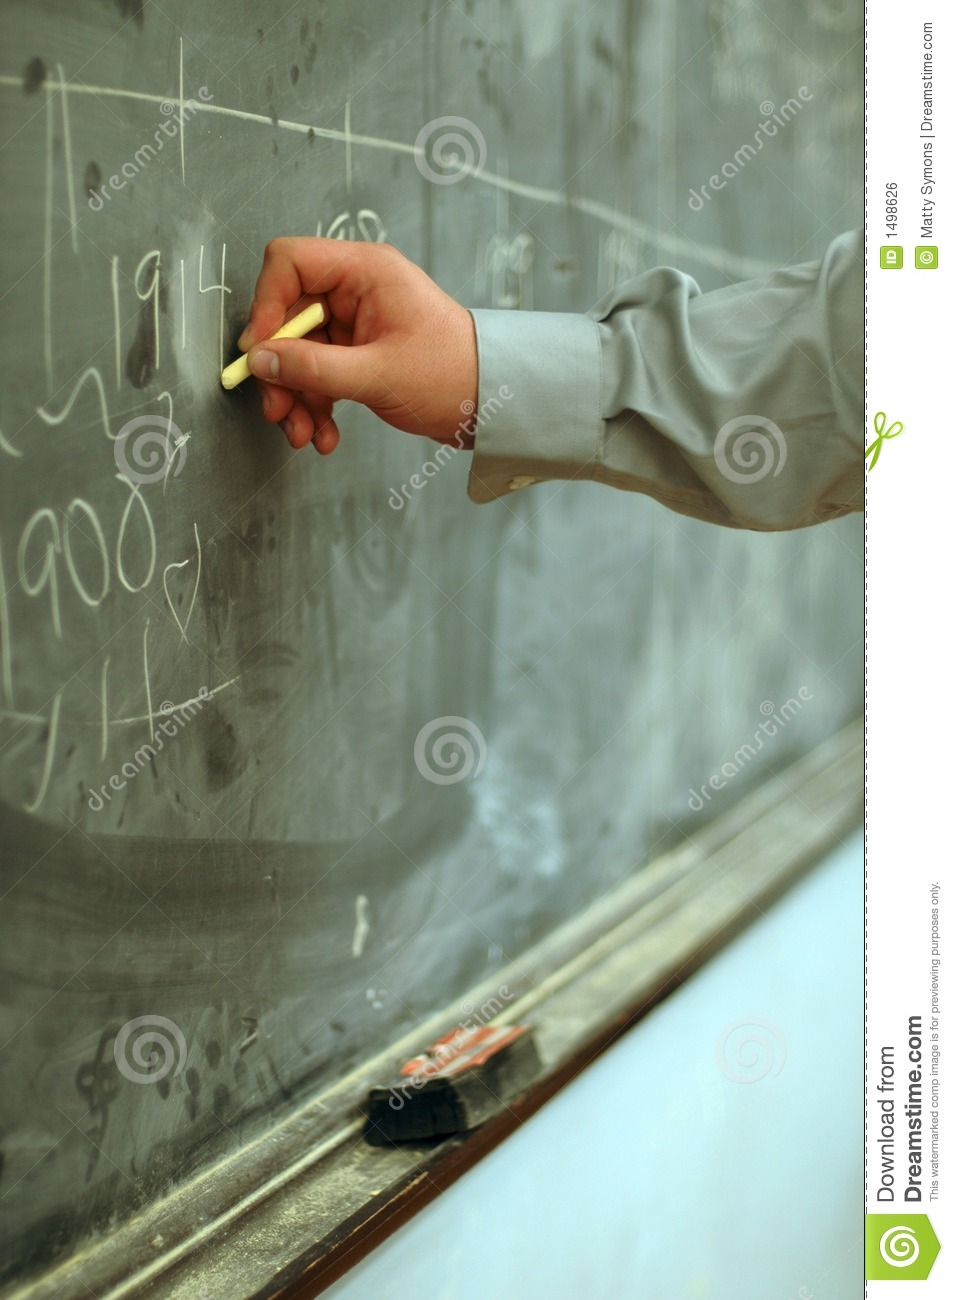 bockbord ritning ~ writing on blackboard royalty free stock image  image